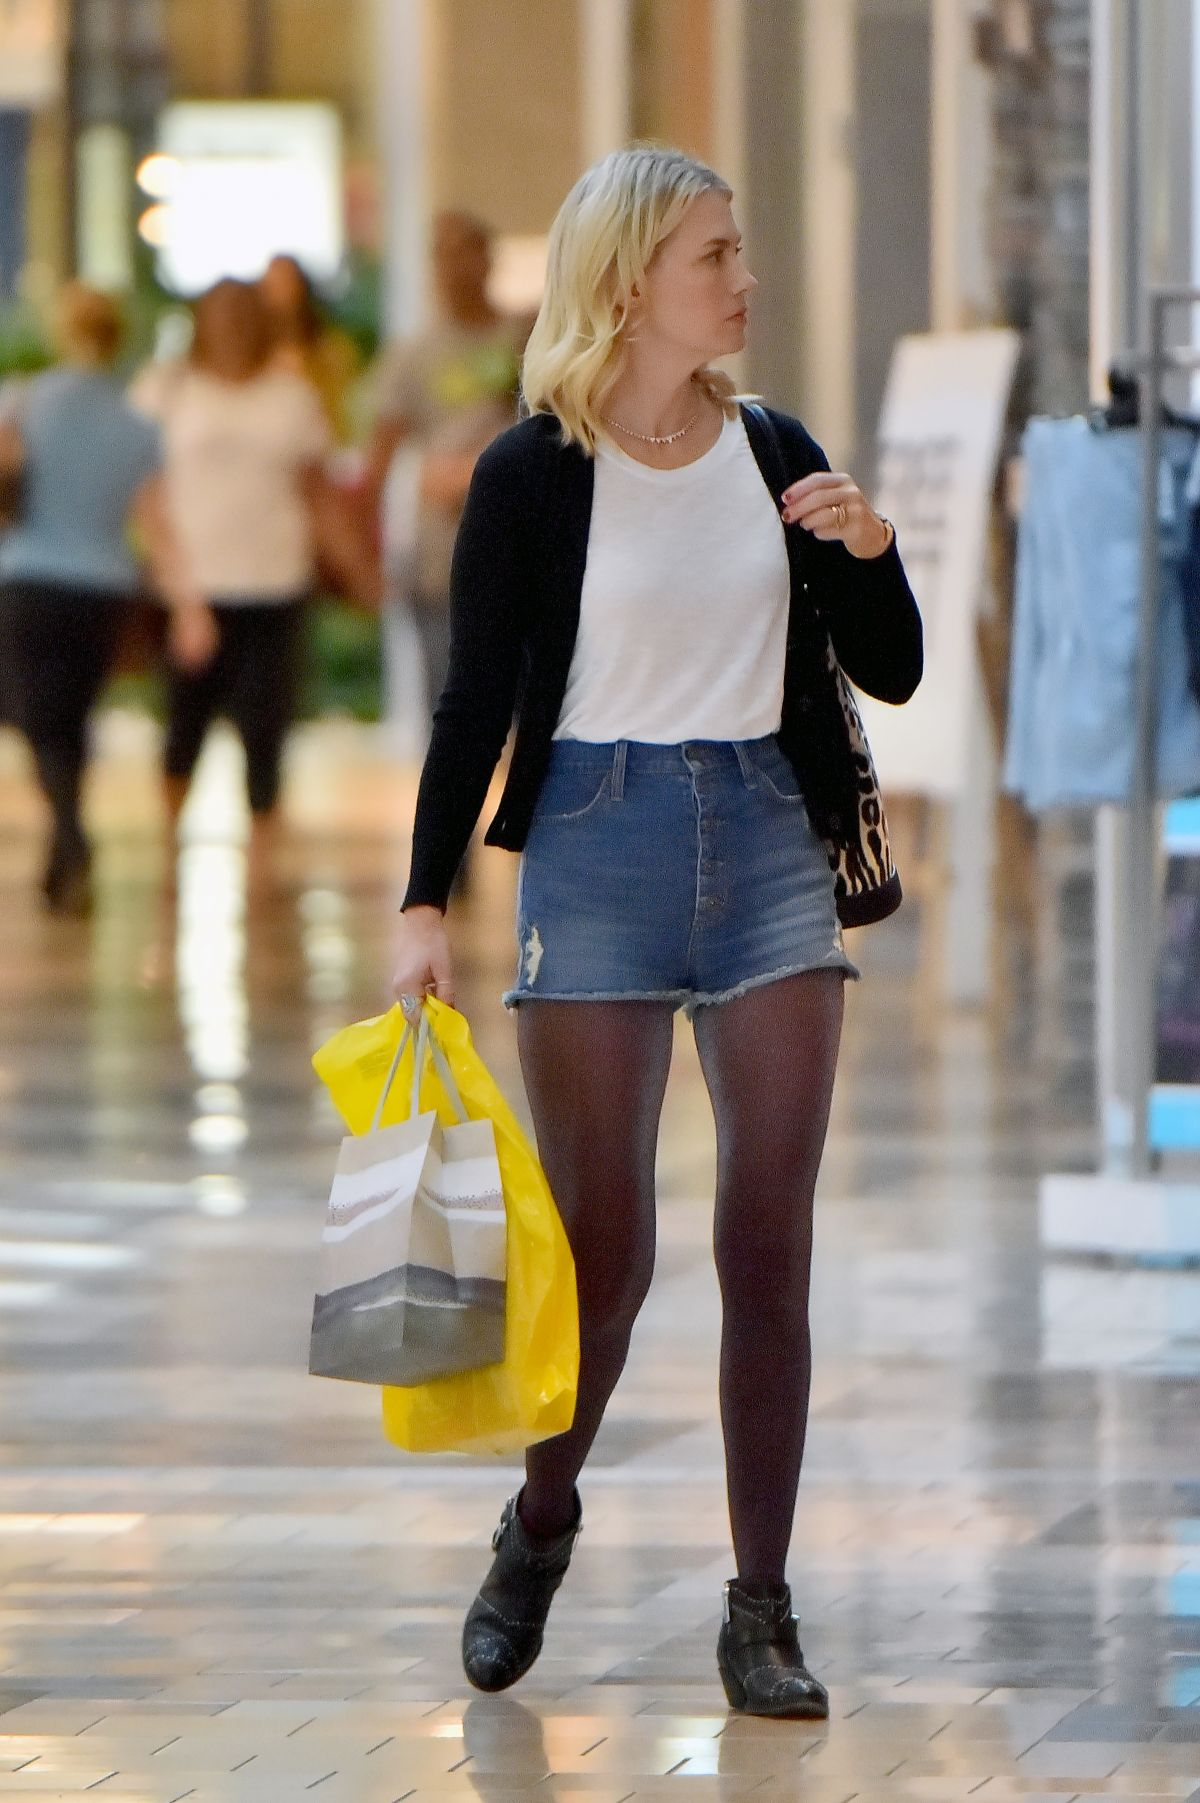 JANUARY JONES In Jeans Shorts Shopping In Los Angeles 11212015 HawtCelebs